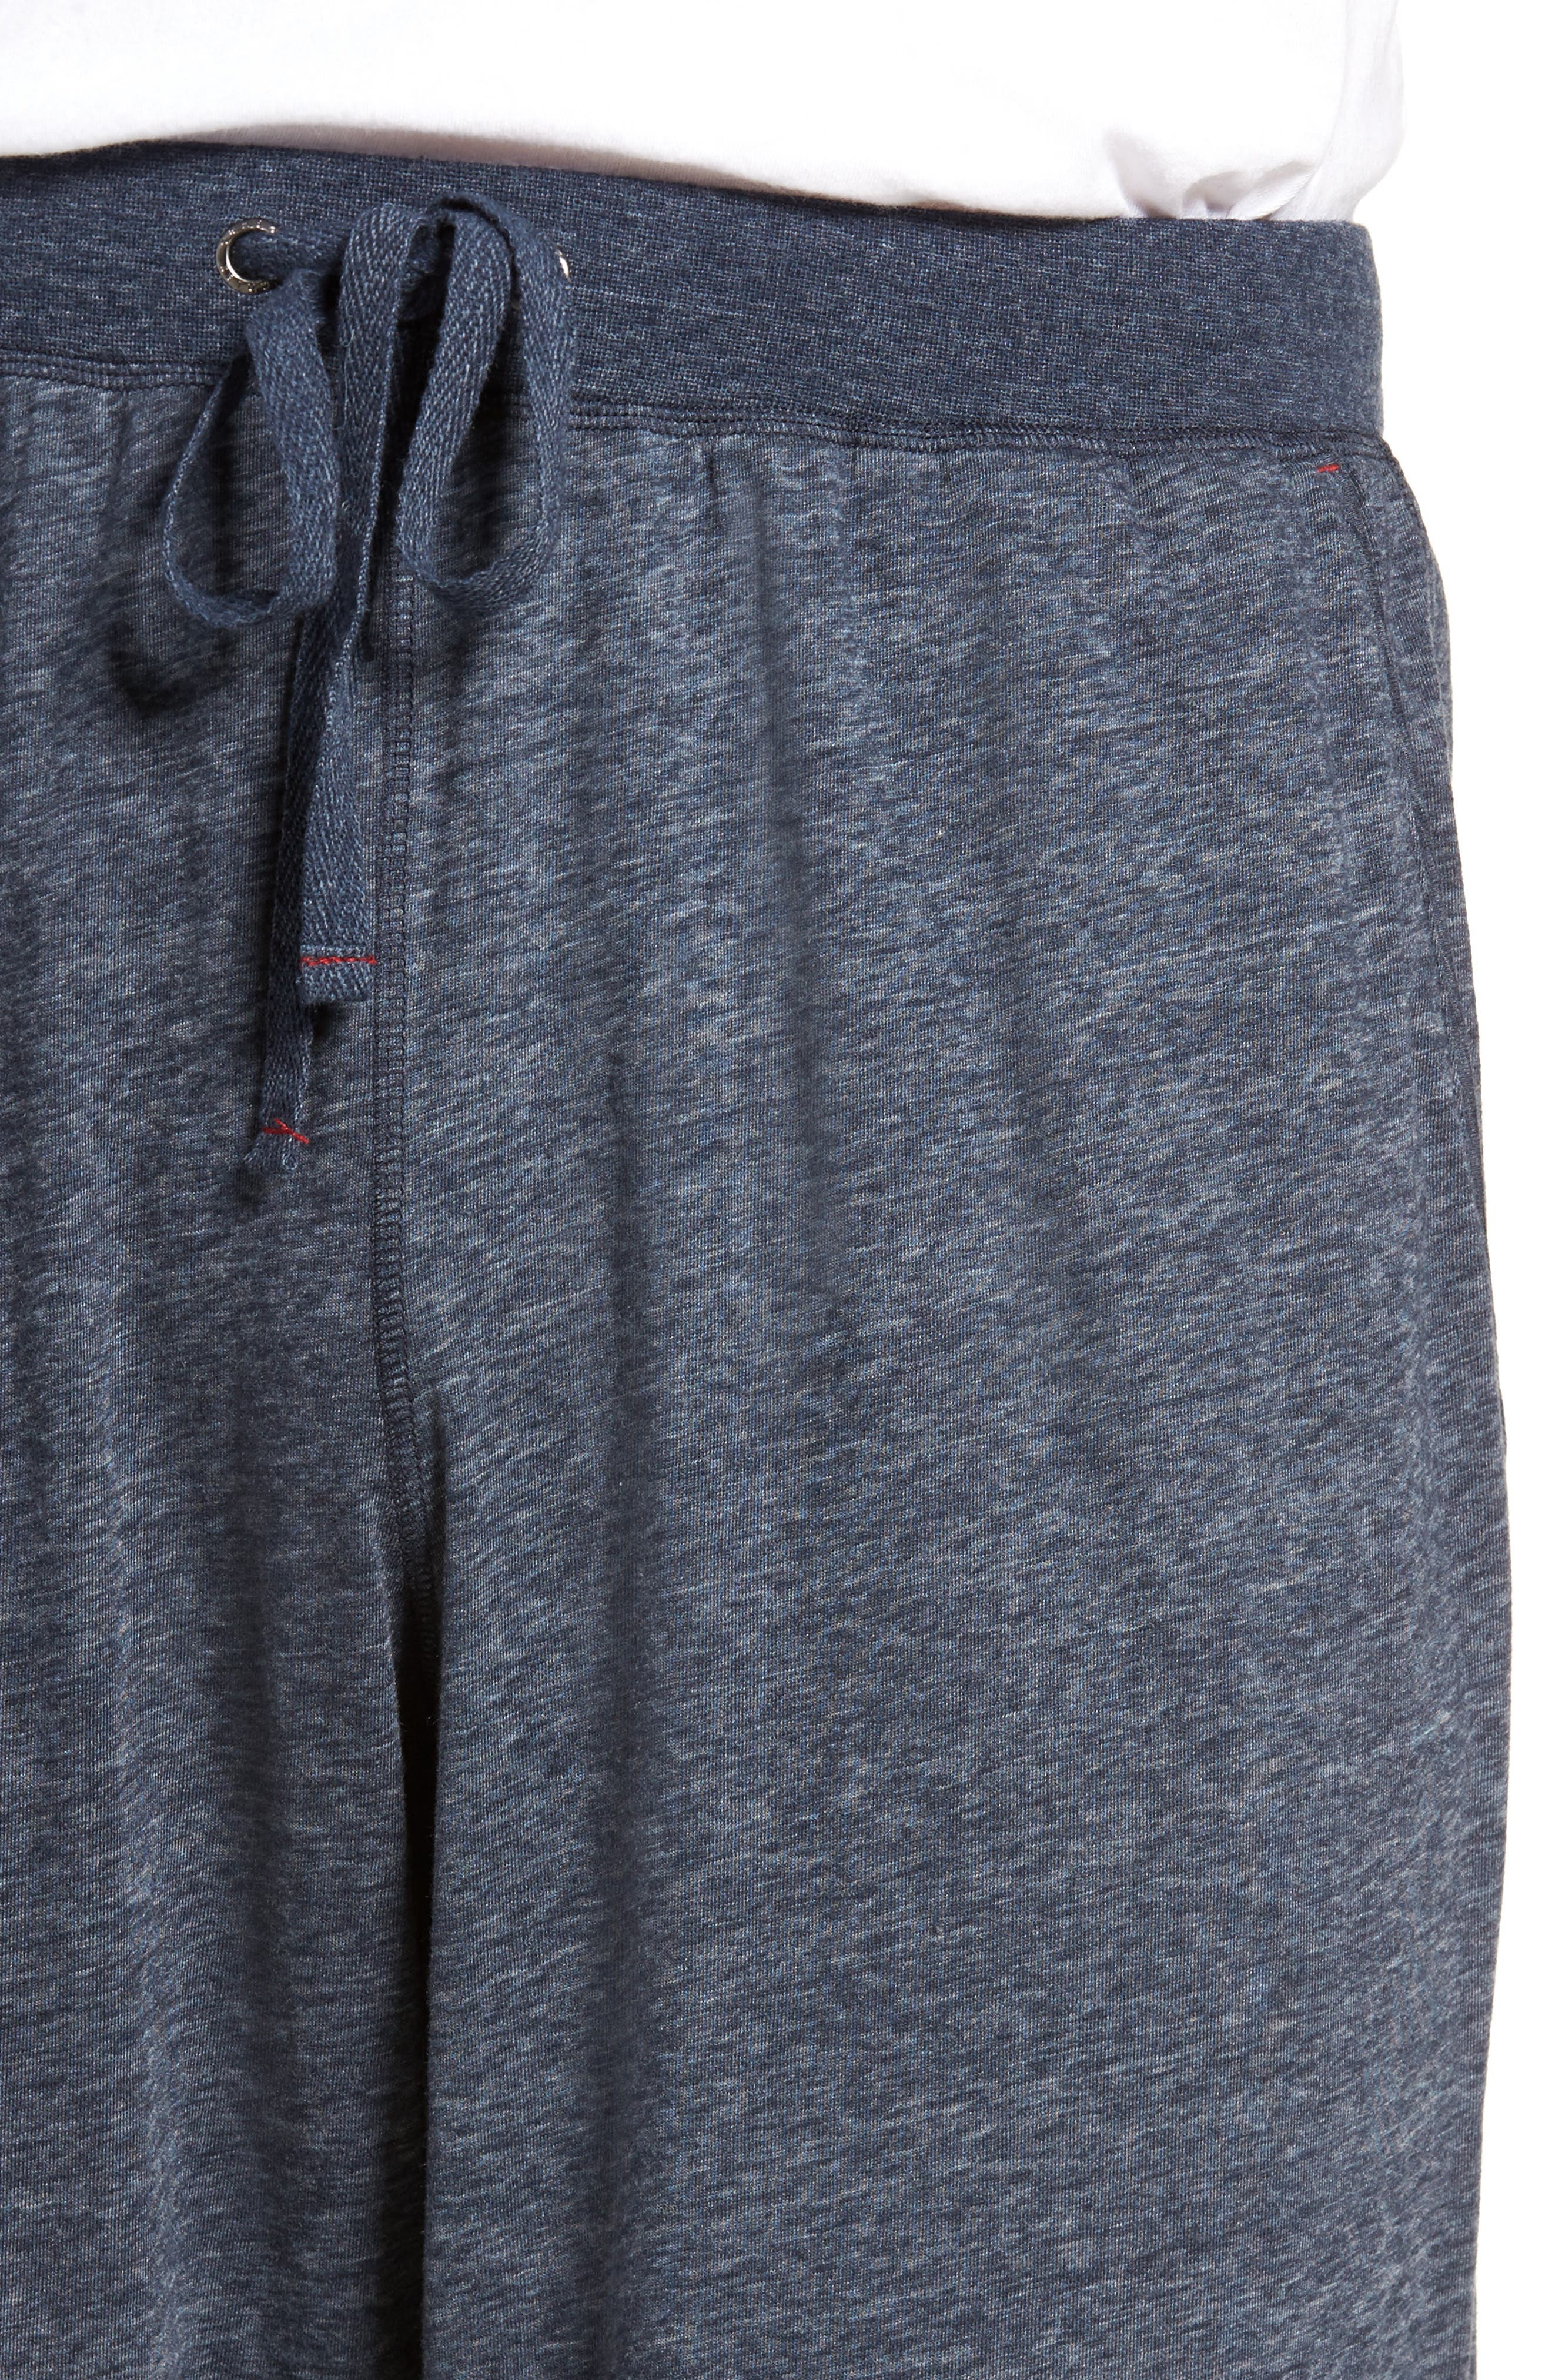 Recycled Cotton Blend Lounge Pants,                             Alternate thumbnail 4, color,                             Navy Heather